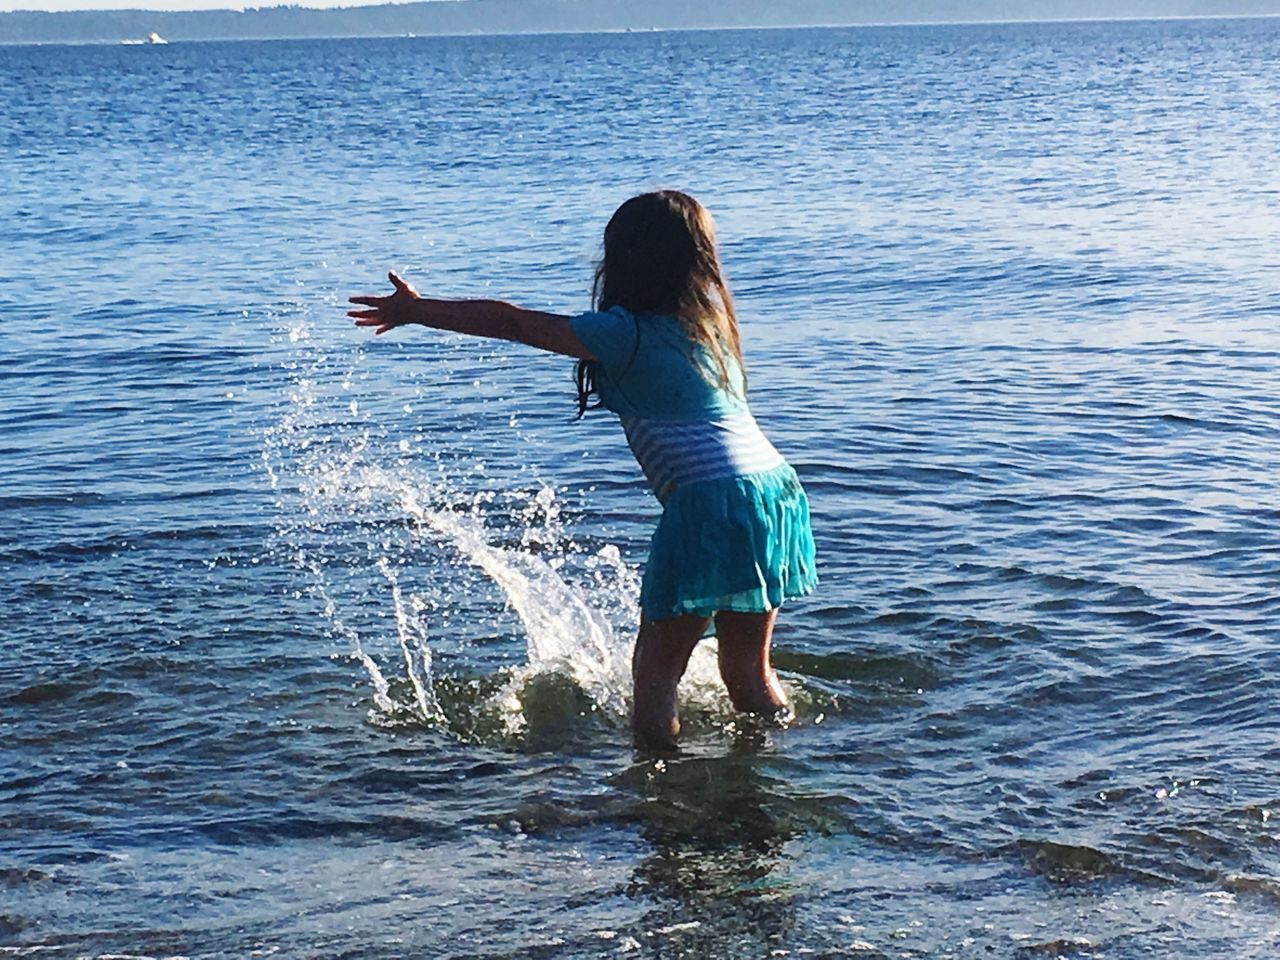 sea, water, one person, rippled, real people, rear view, nature, day, outdoors, standing, horizon over water, full length, leisure activity, ankle deep in water, lifestyles, women, childhood, beauty in nature, wave, sky, adult, people